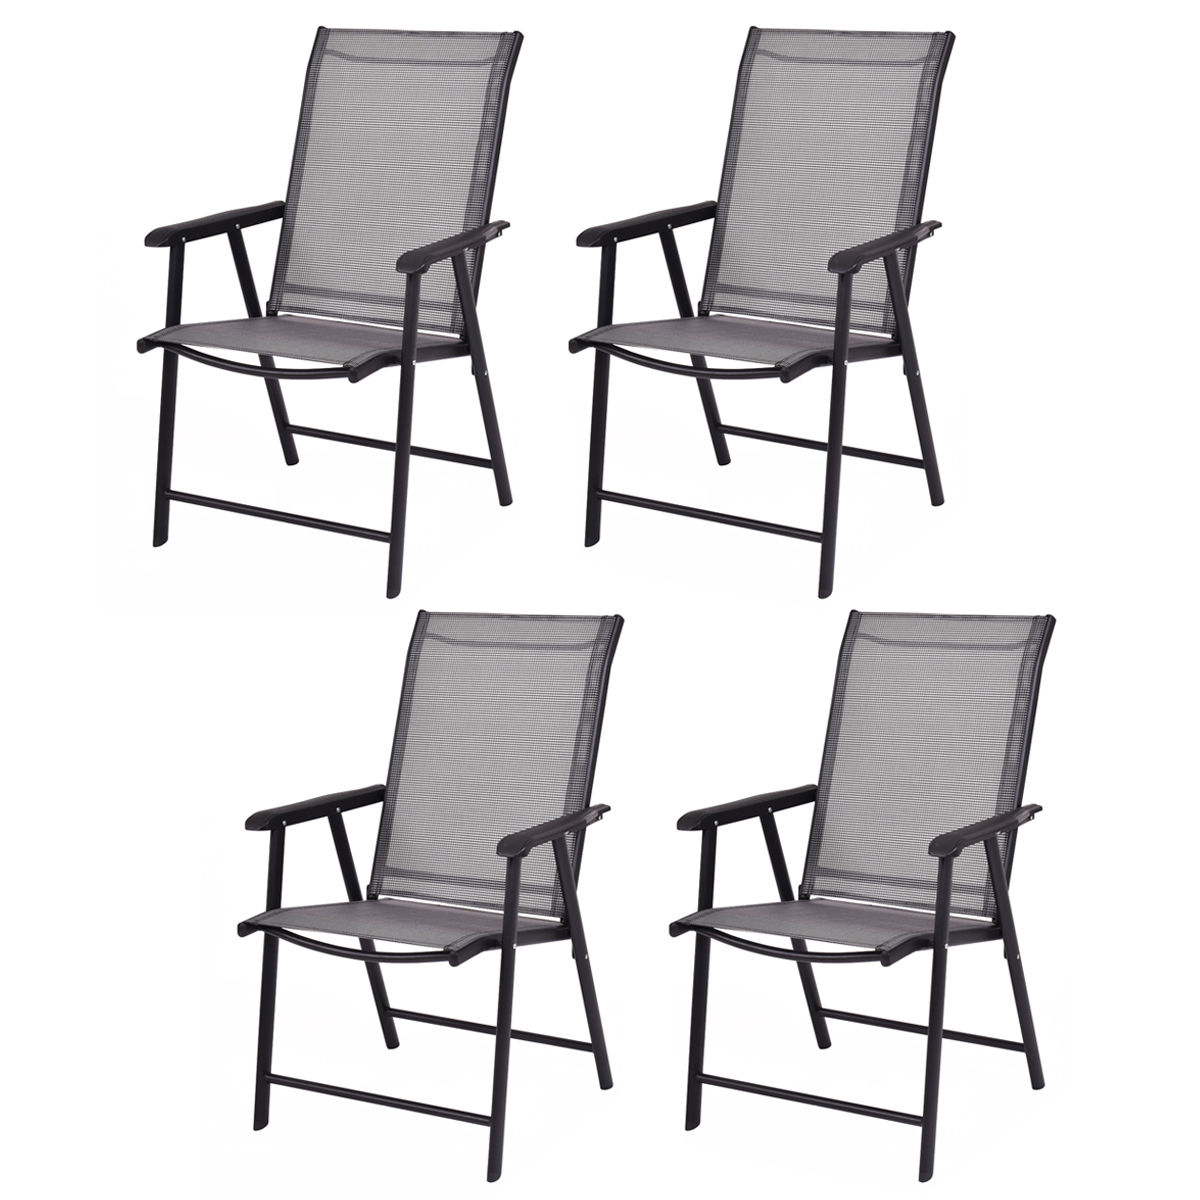 Costway Set Of 4 Outdoor Patio Folding Chairs Camping Deck Garden Pool  Beach W/Armrest